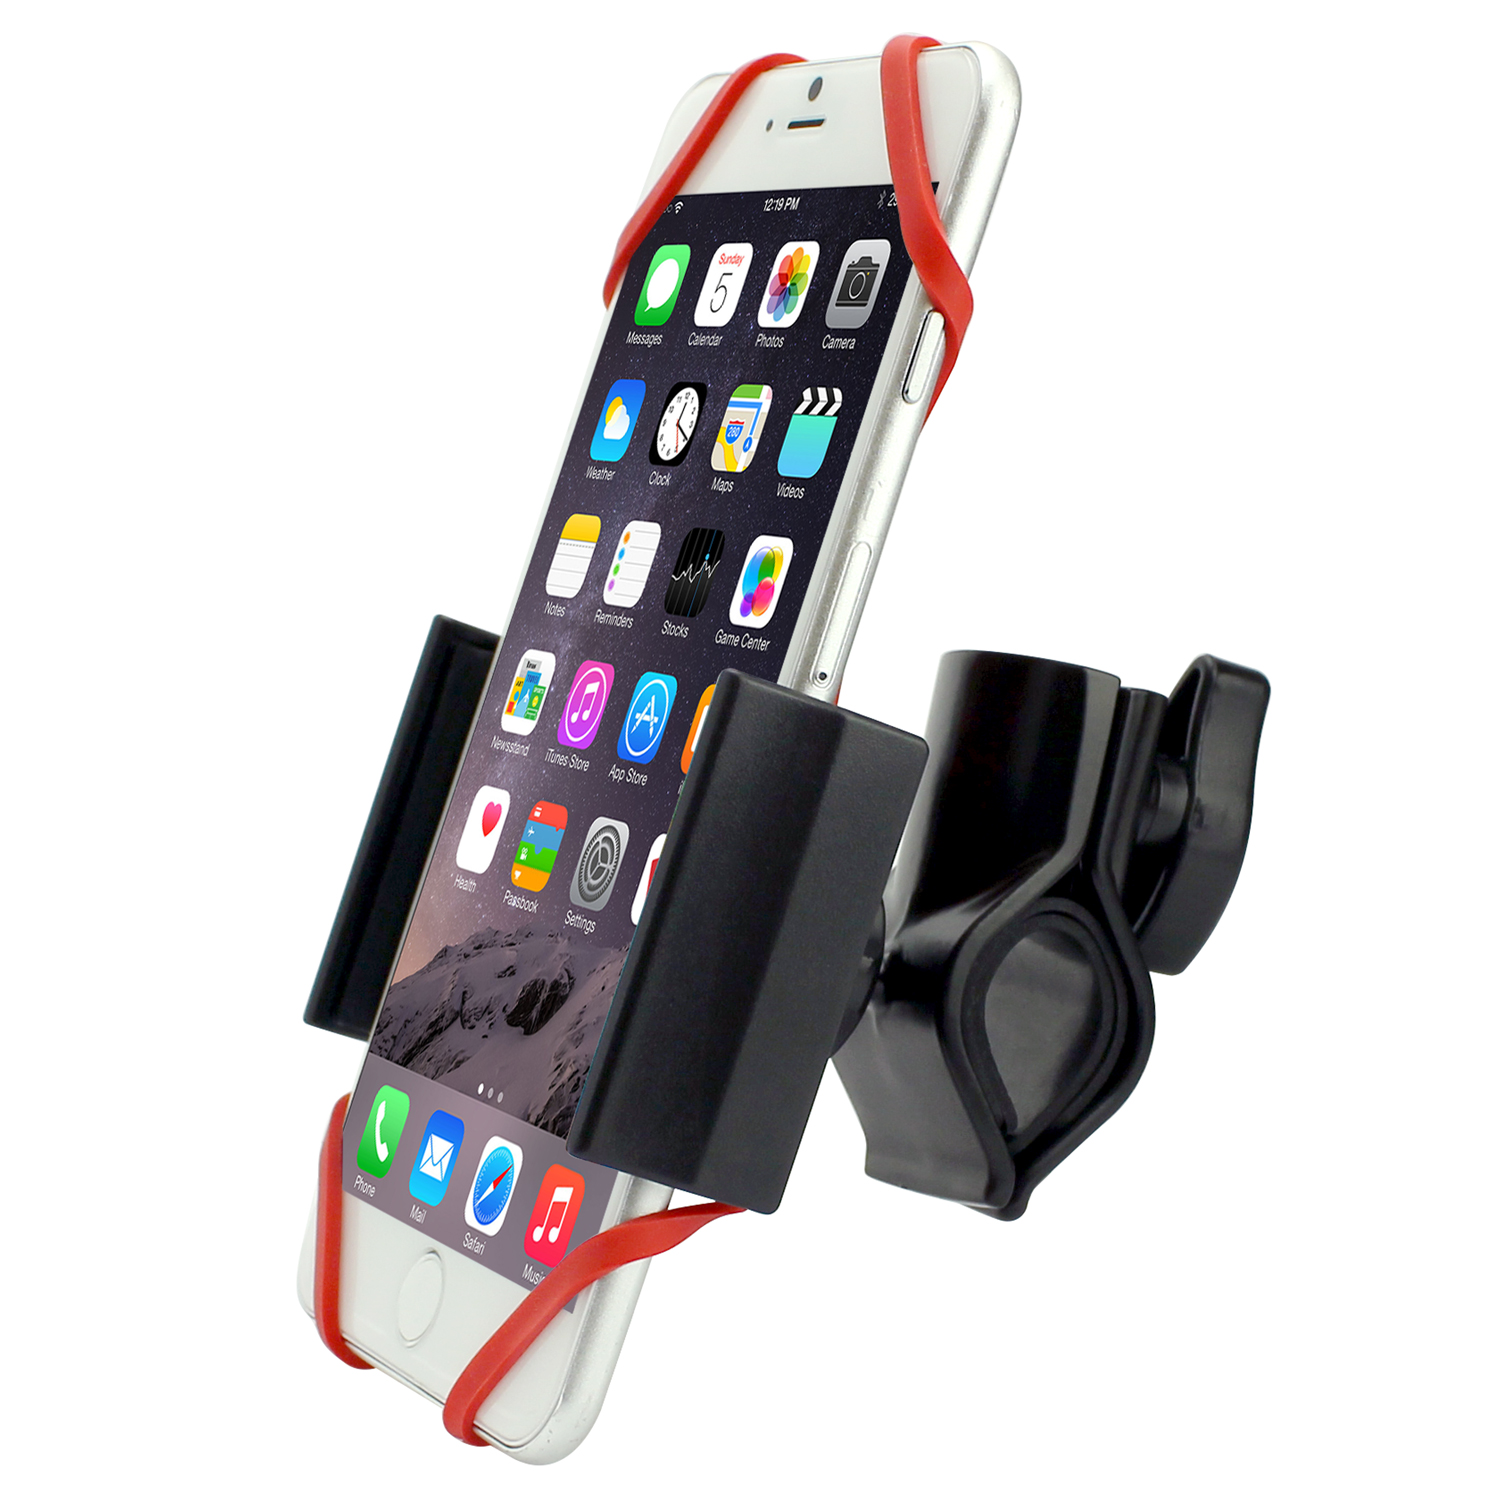 LG Spectrum Bike Phone Mount Adjustable Black